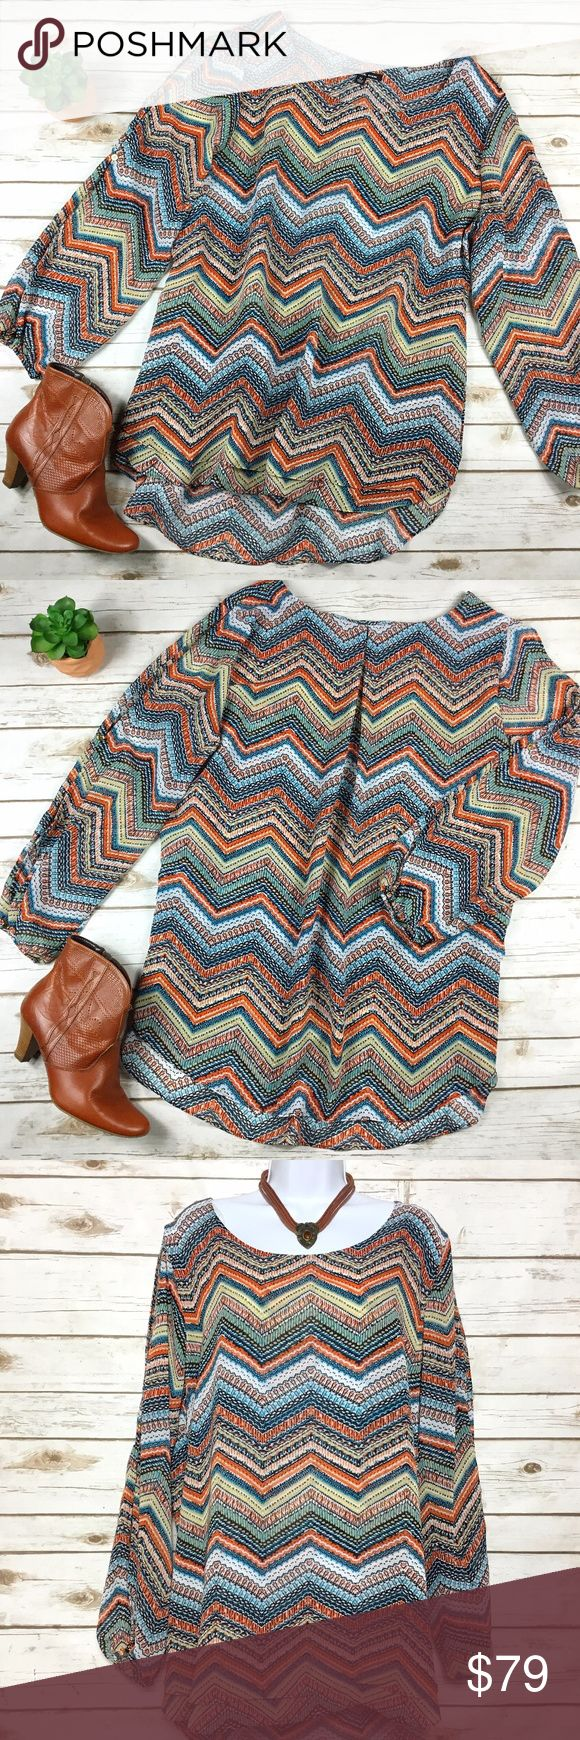 Zac & Rachel Plus Size Chevron Print Layered Tunic Plus size layered abstract chevron print top or tunic by Zac & Rachel has long split sleeves with gold button closure at the cuffs. Great colors make this a super versatile piece! 100% polyester. Size 2X, measures about 24 inches across from armpit to armpit, and 29 inches in length in front and up to 33 inches in back. B5 Zac & Rachel Tops Tunics